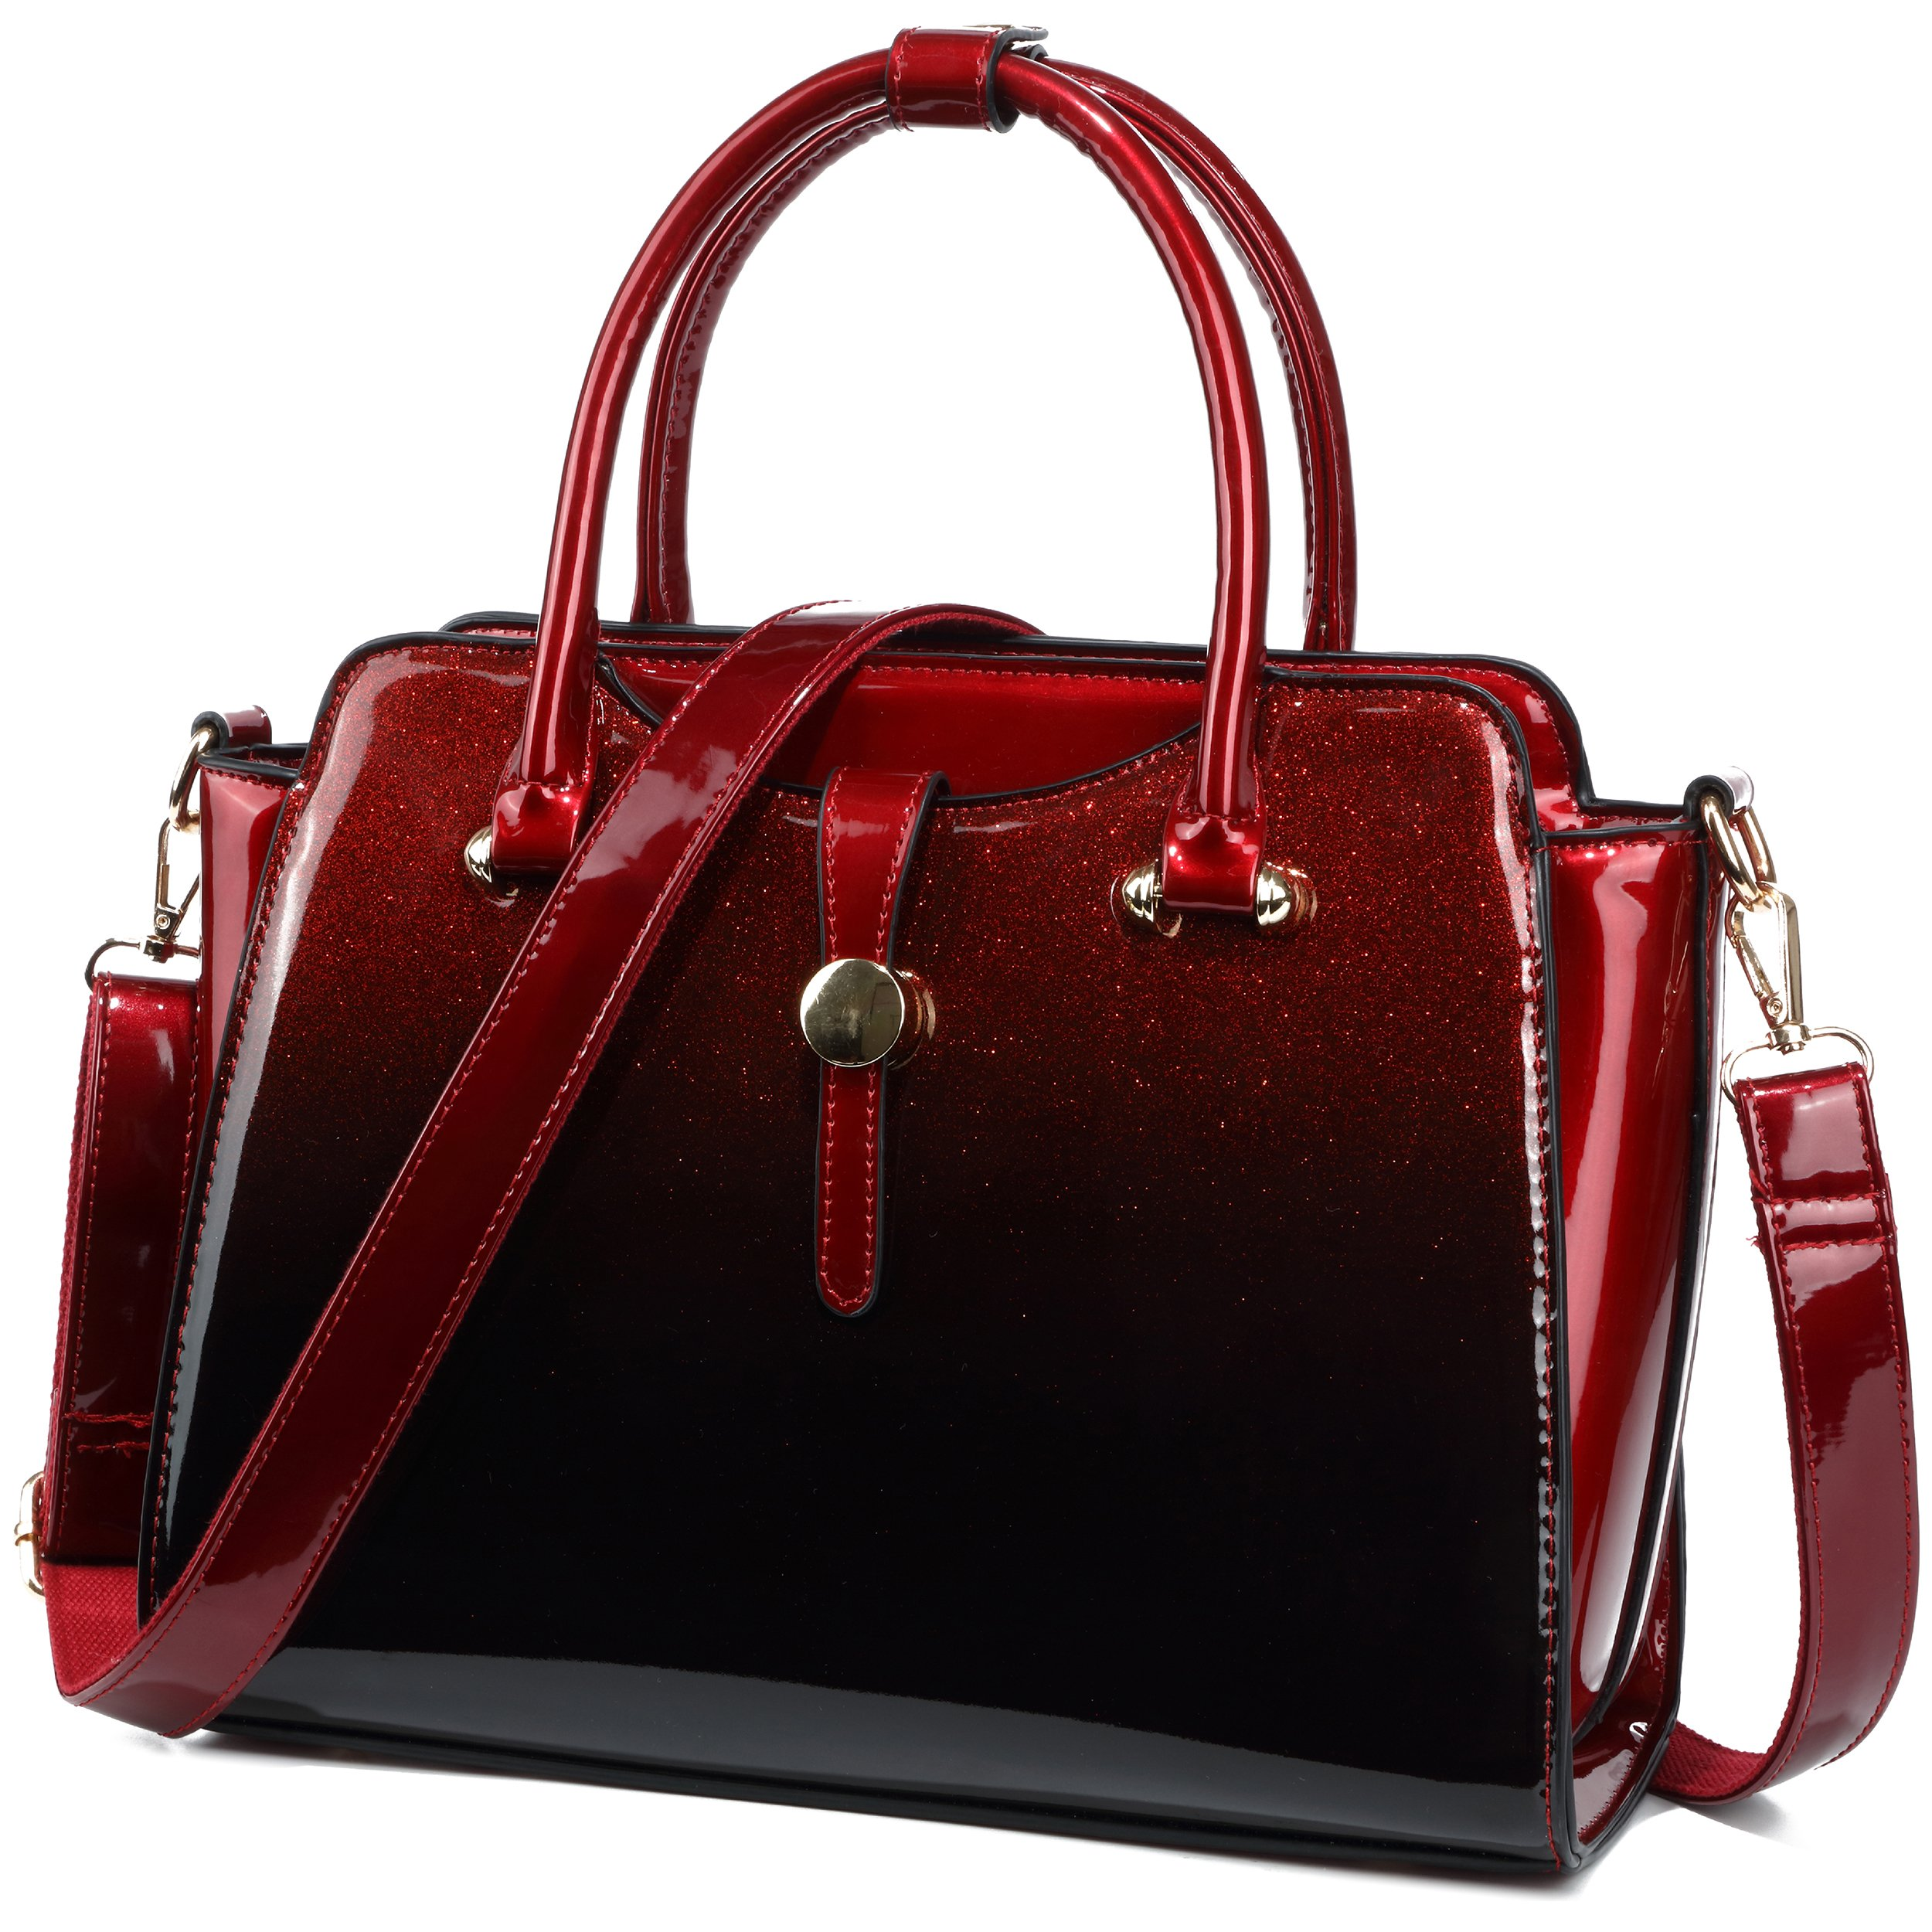 Womens Patent Leather Satchel Handbags (Red)